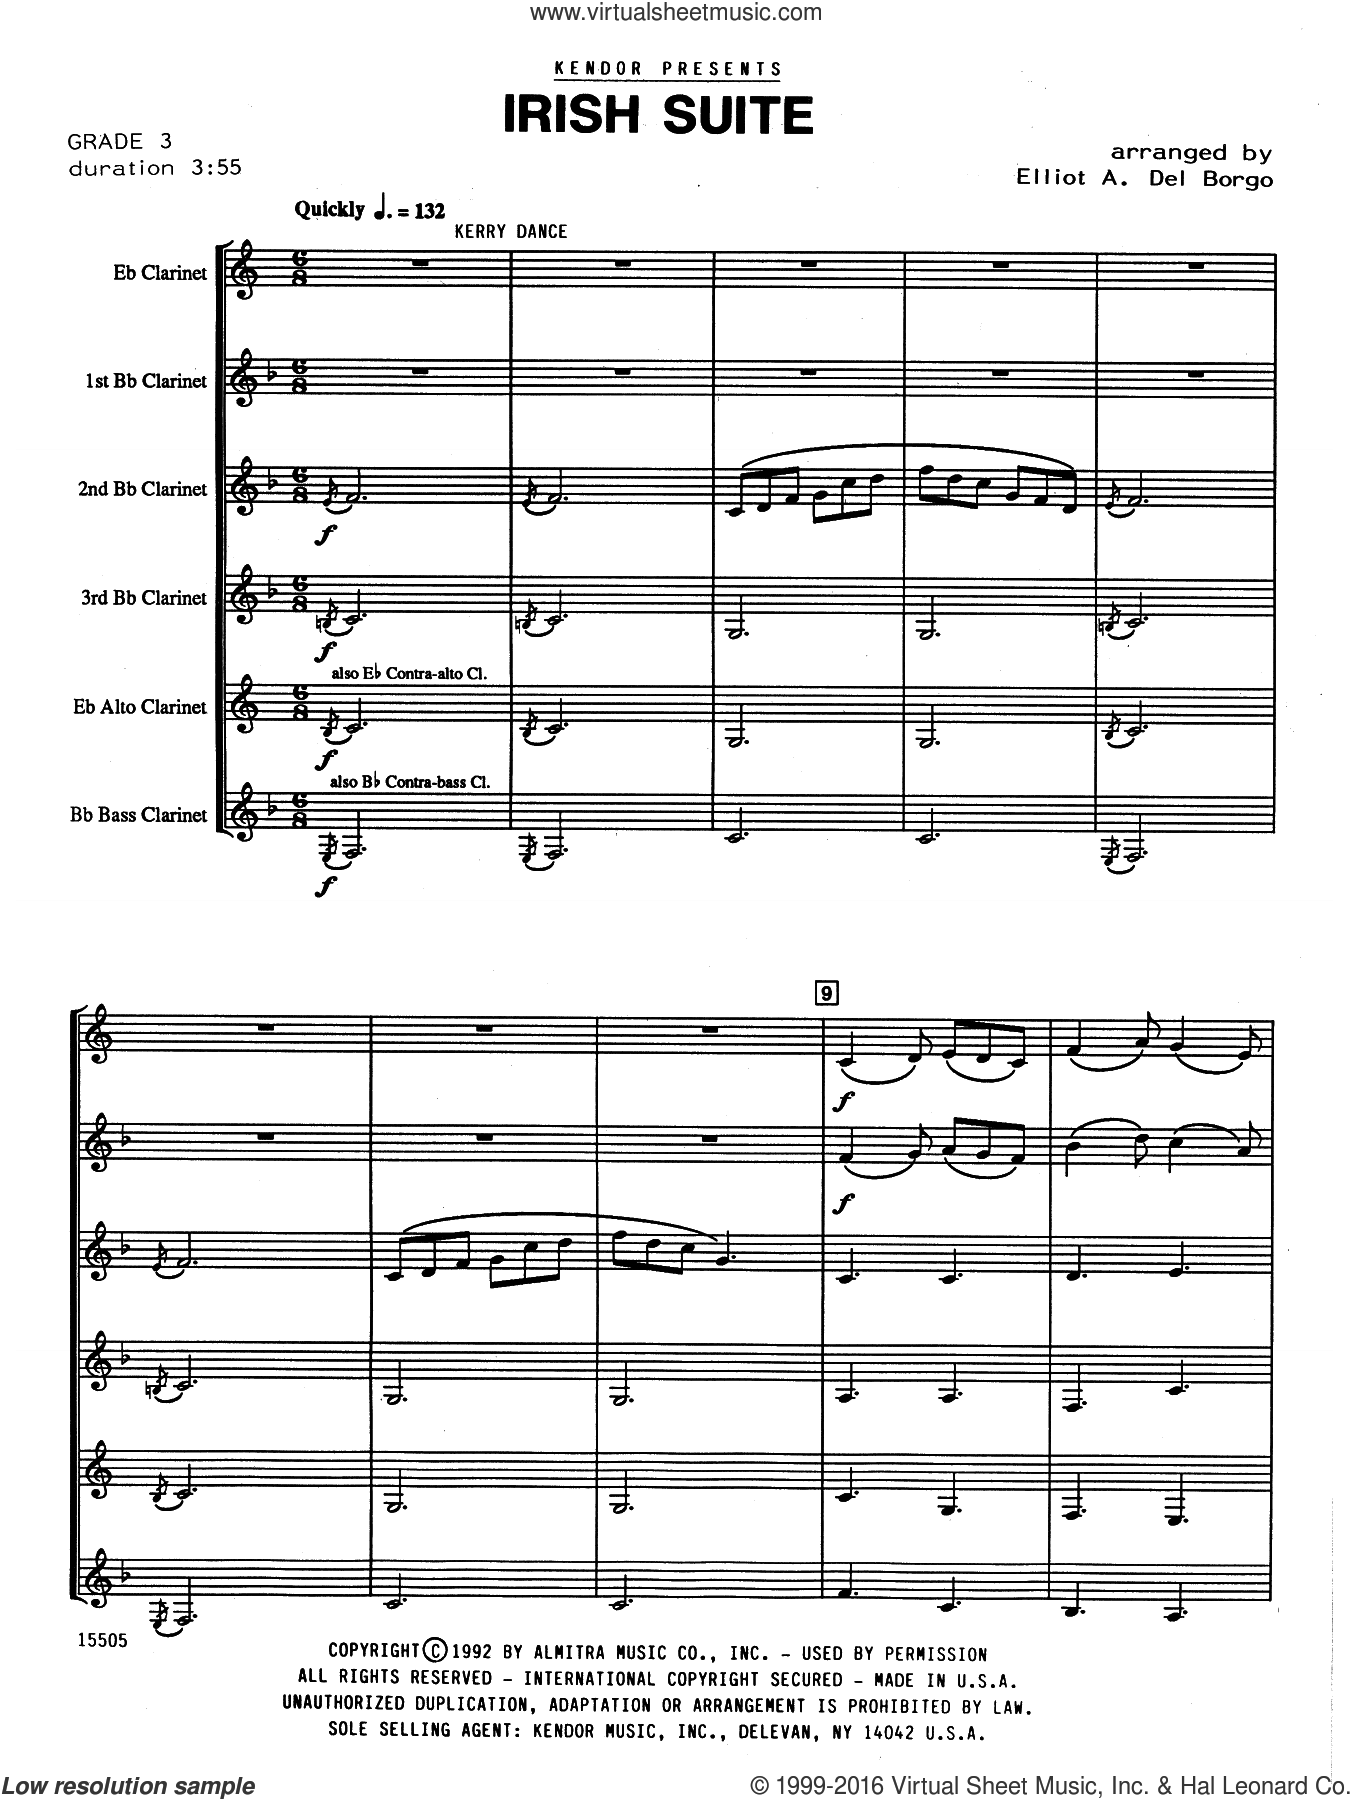 Irish Suite (COMPLETE) sheet music for clarinet ensemble by Elliot A. Del Borgo